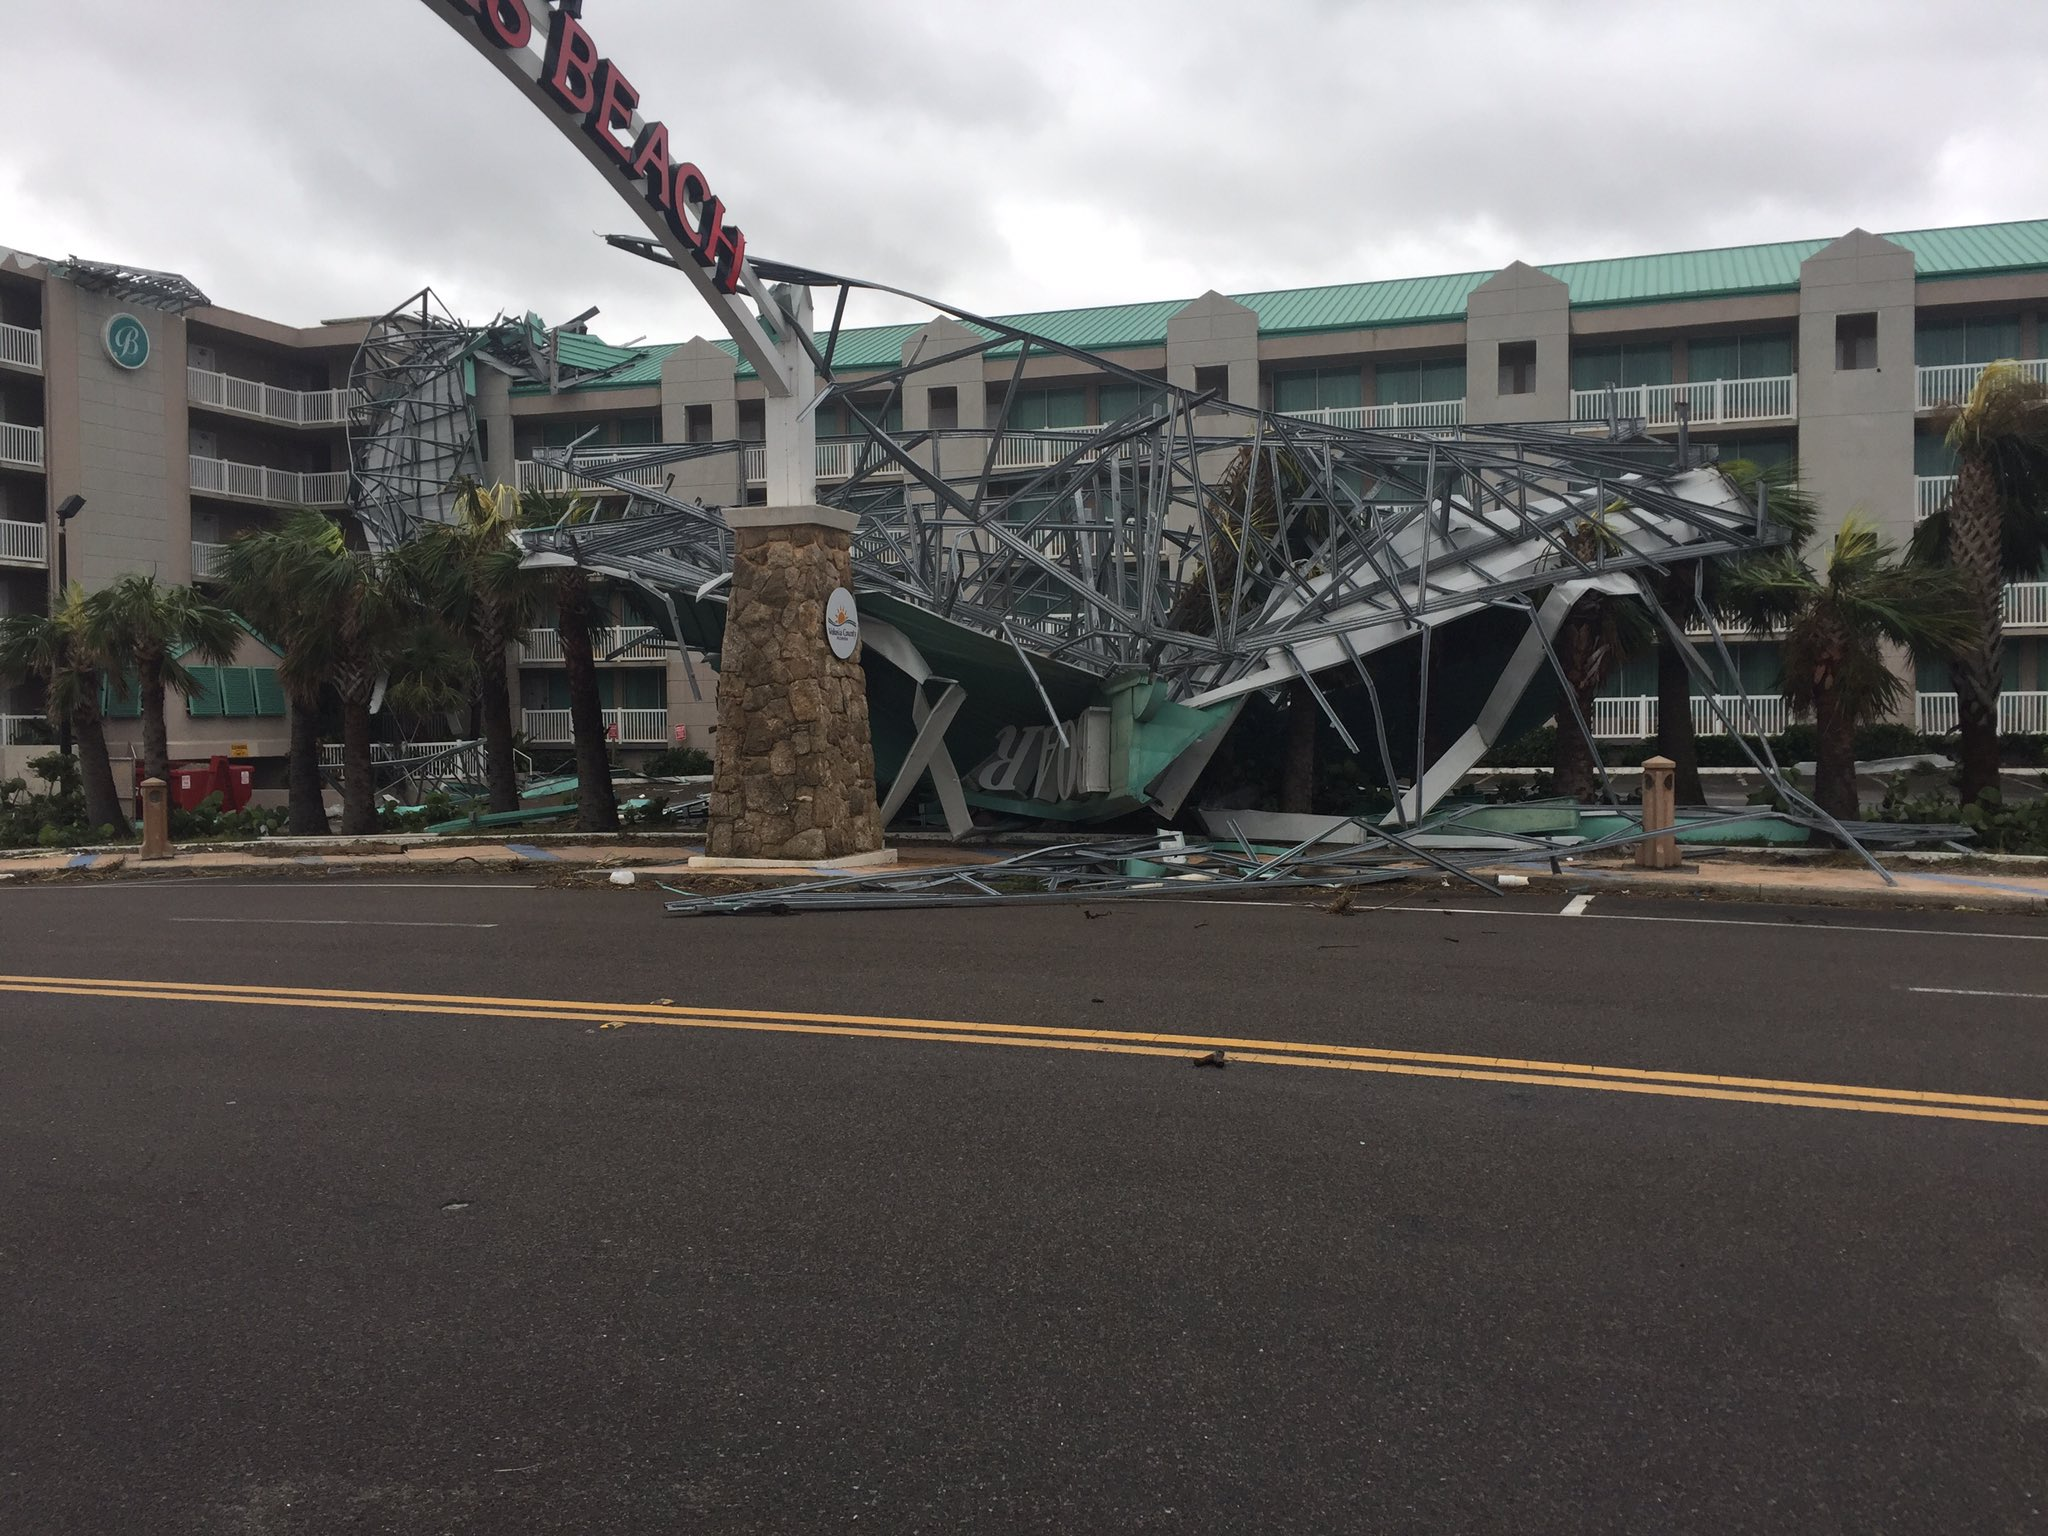 <div class='meta'><div class='origin-logo' data-origin='none'></div><span class='caption-text' data-credit='Ty Russell/Daytona Beach'>Damage is shown near the ''World's Most Famous Beach'' sign in Daytona Beach on Monday.</span></div>